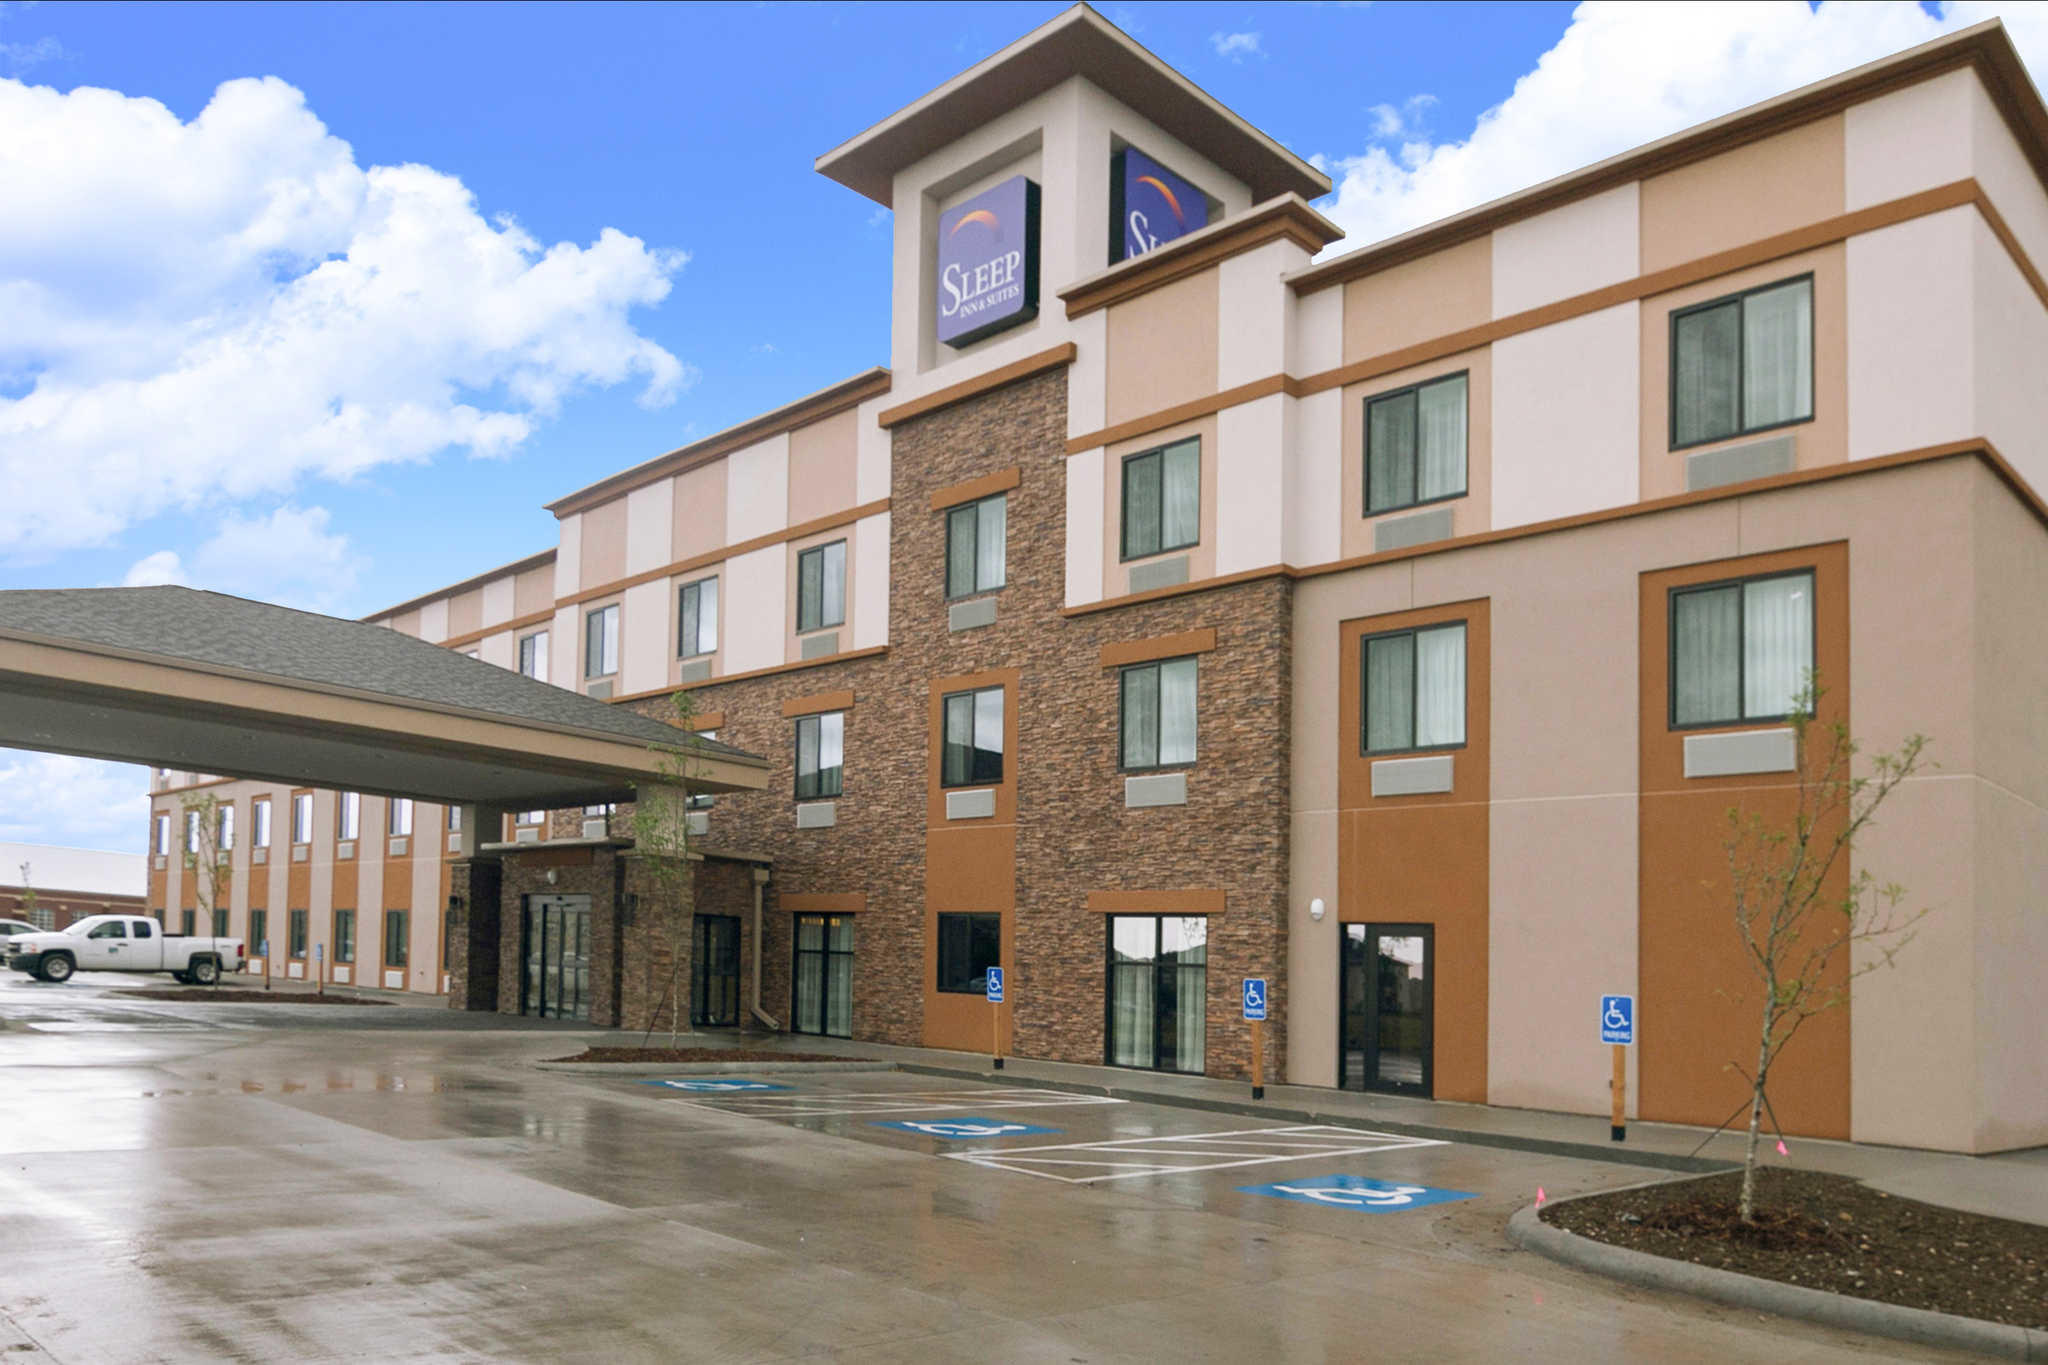 Hotel Rooms In West Des Moines Ia